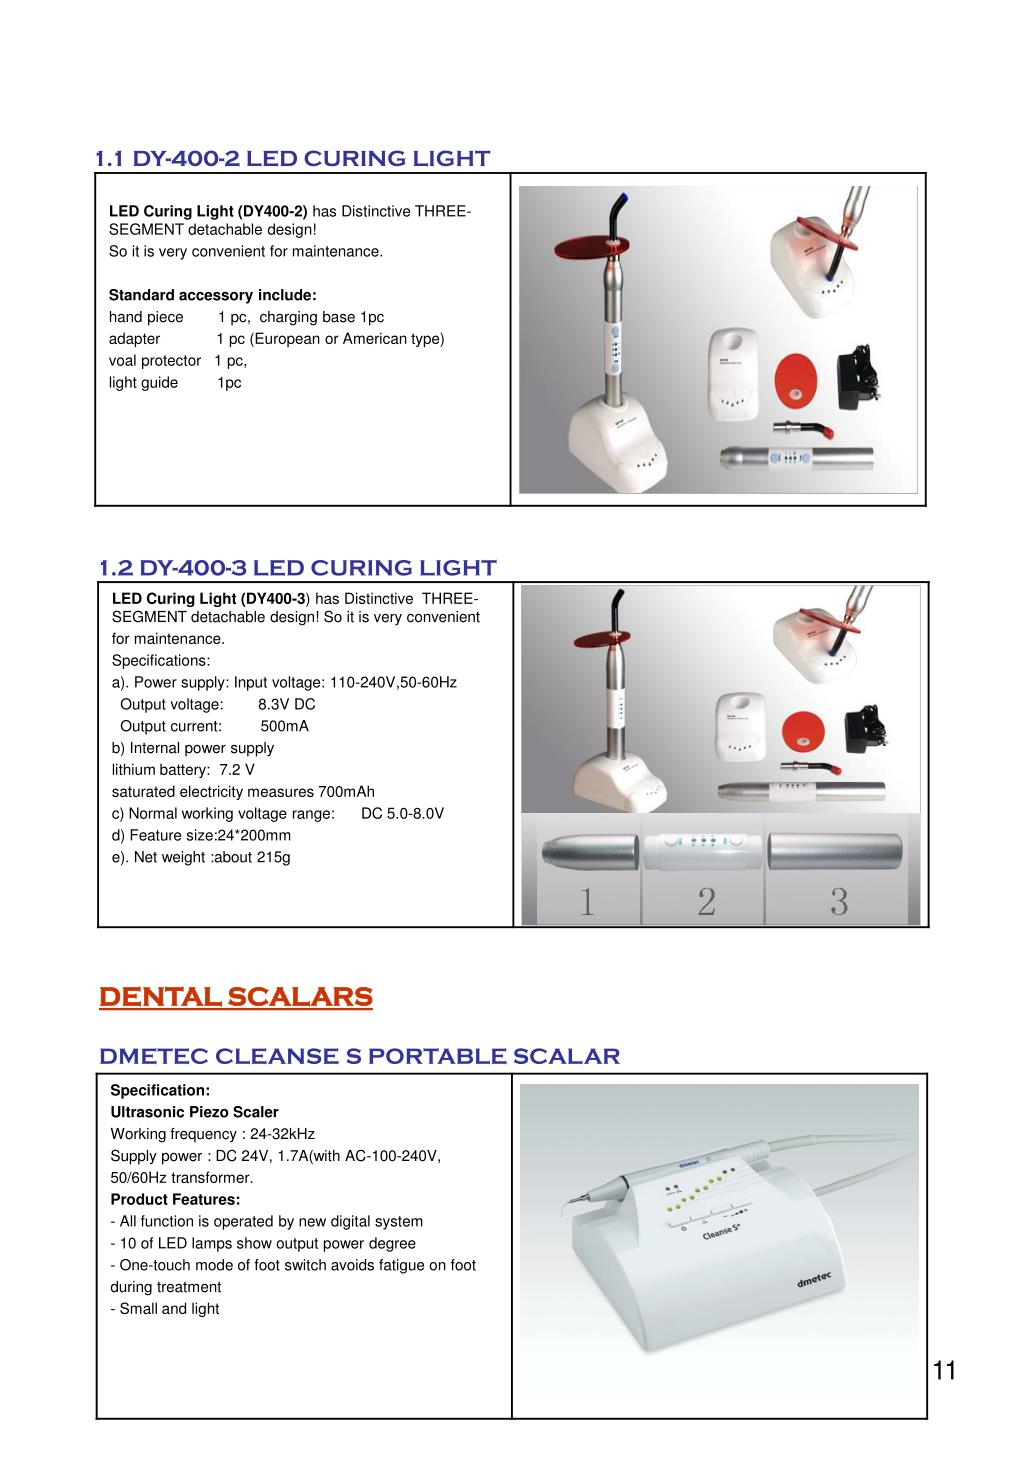 1.1 DY-400-2 LED CURING LIGHT